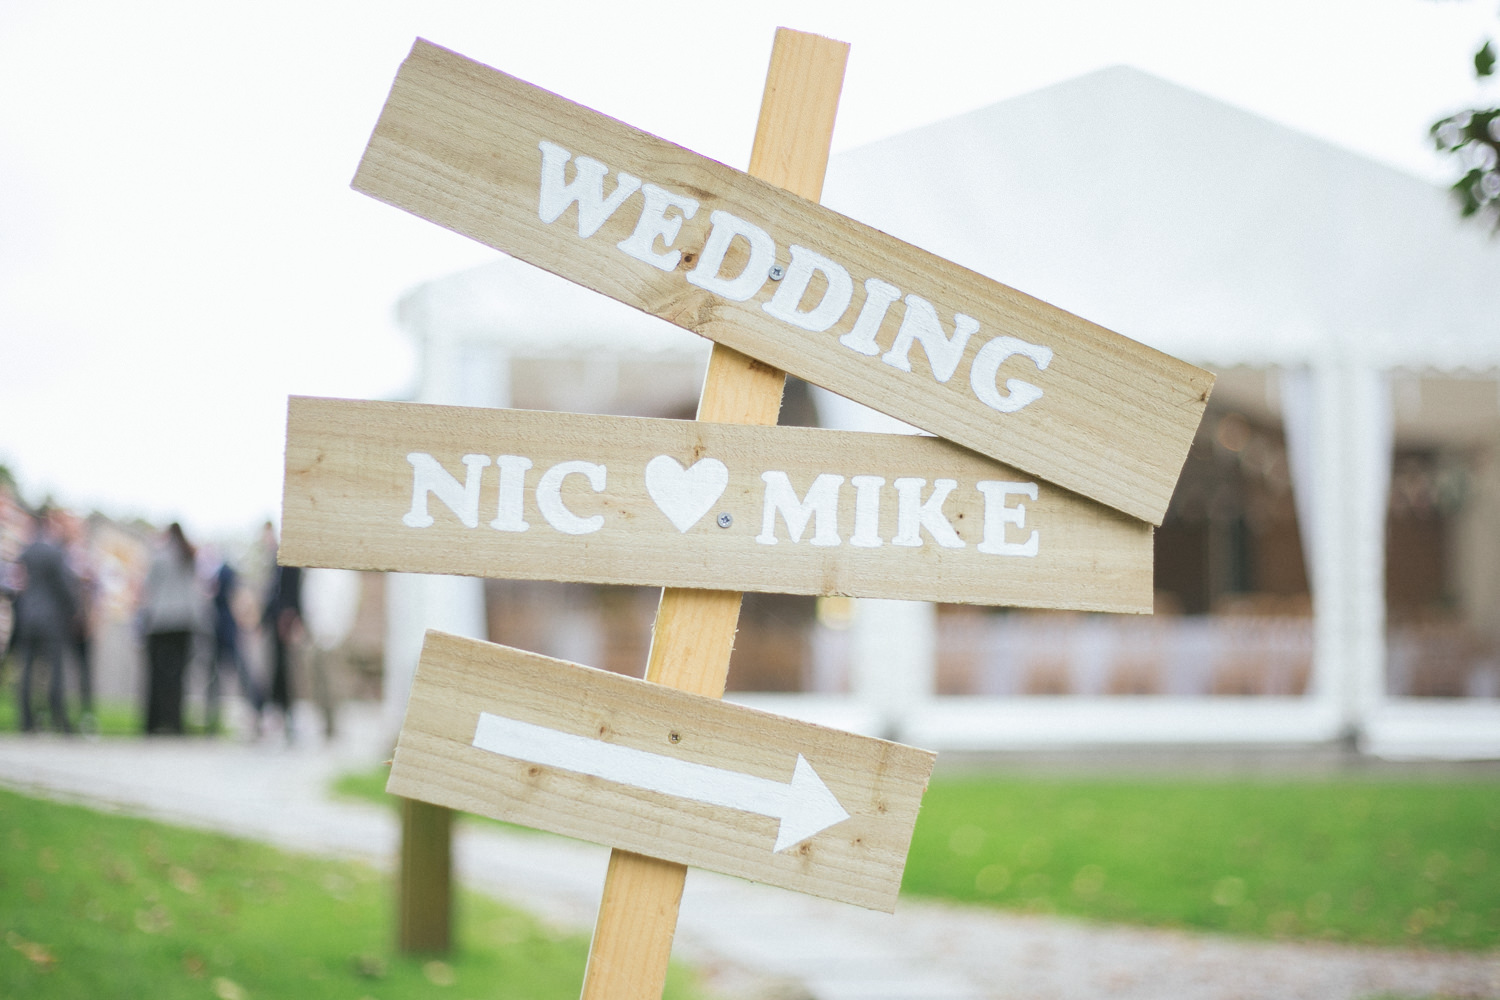 Nicola & Mike's beautiful outdoor wedding at The Green in Cornwall. The couple were lucky with the late summer sun so they made the most of the gorgeous outdoor space. Guests enjoyed champagne and games on the lawn whilst we explored woodlands and fields for some lovely couple photos. The decor was really gorgeous with an early autumn apple cider & farm theme - love the wellies and little scarecrow!! Nicola loves sunflowers so they were featured in her bouquet, on the tables. and wedding cake.